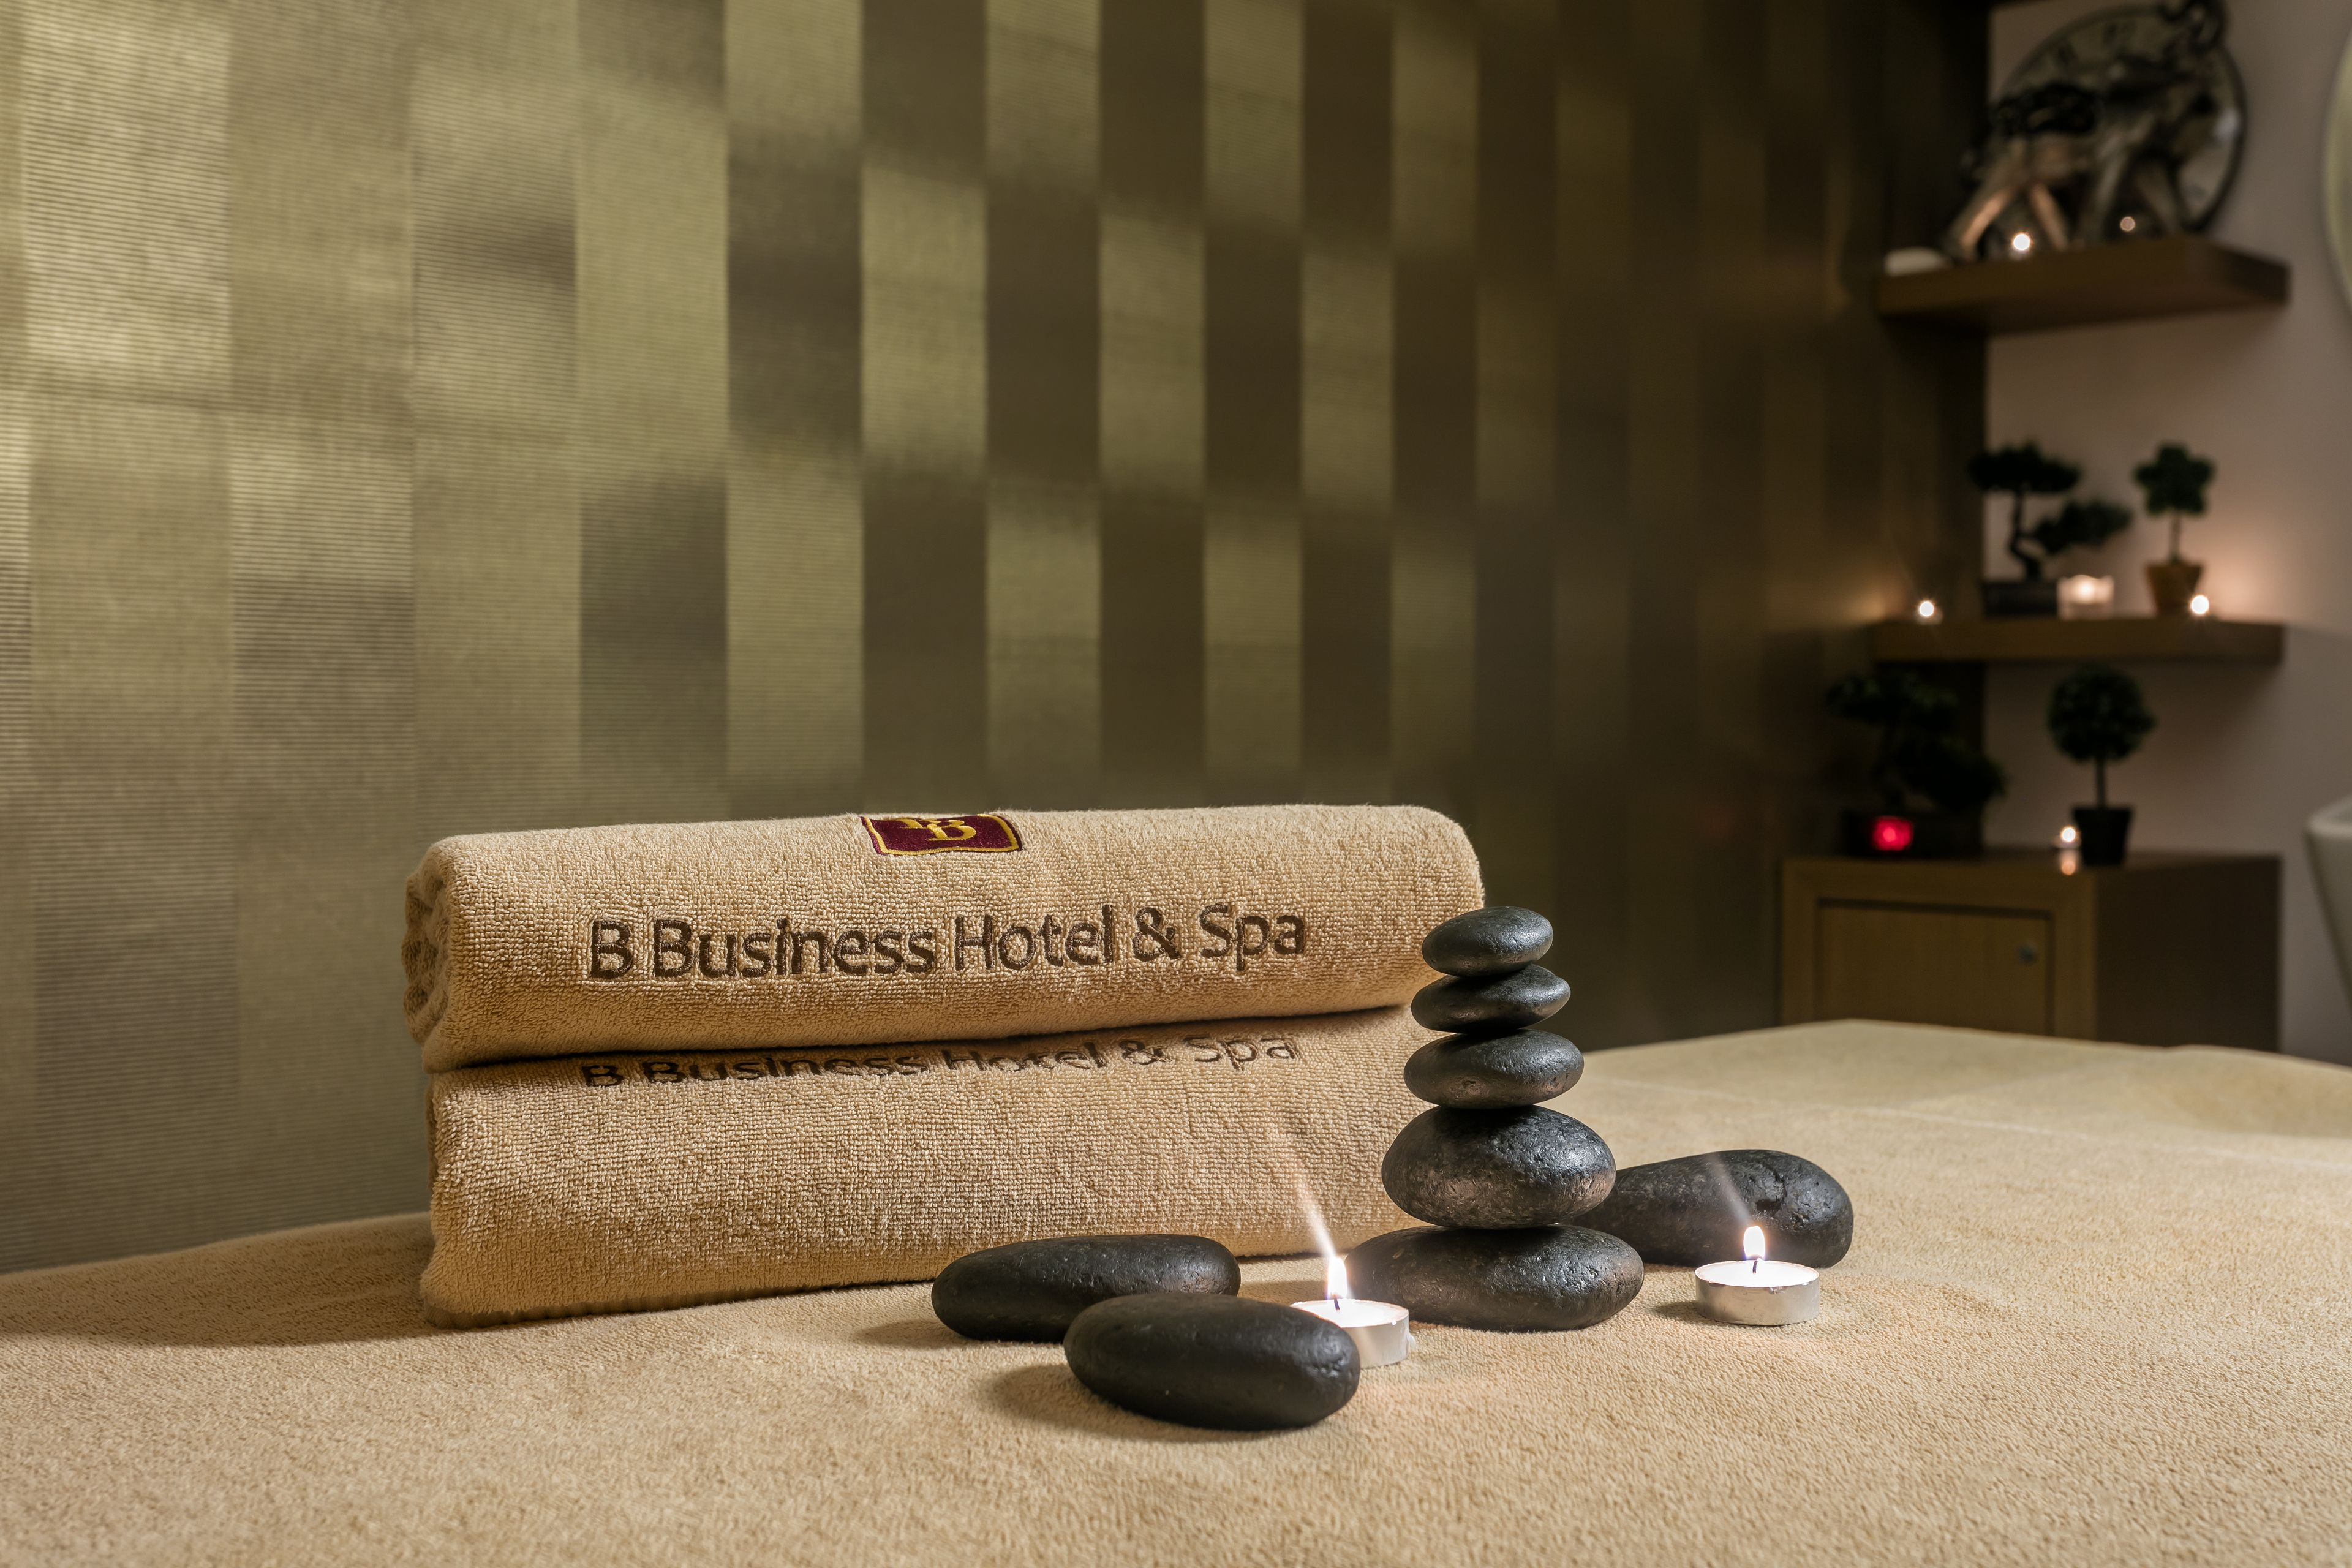 B Business Hotel And Spa